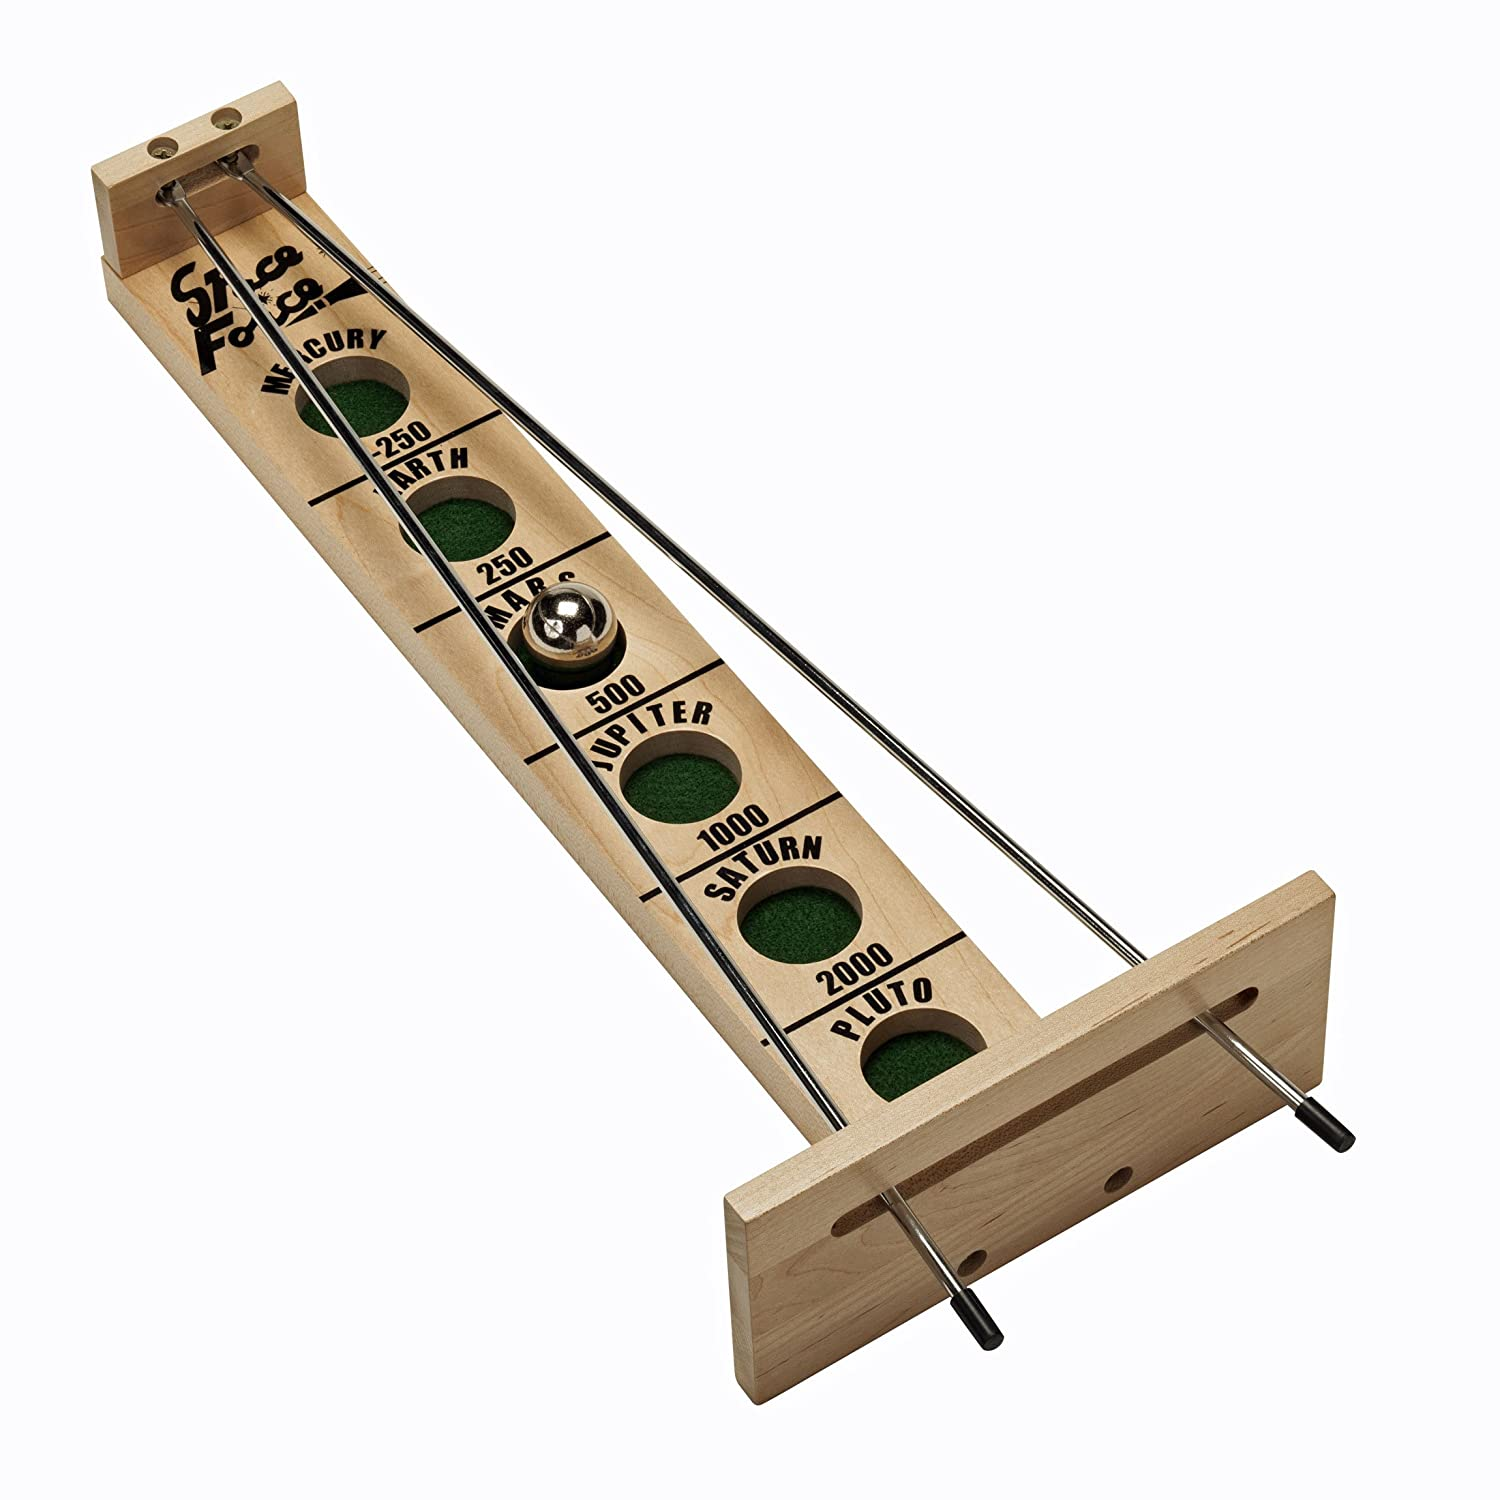 Solid Maple Wood Wood Expressions Inc. WE Games Shoot The Moon Board Game Made in USA